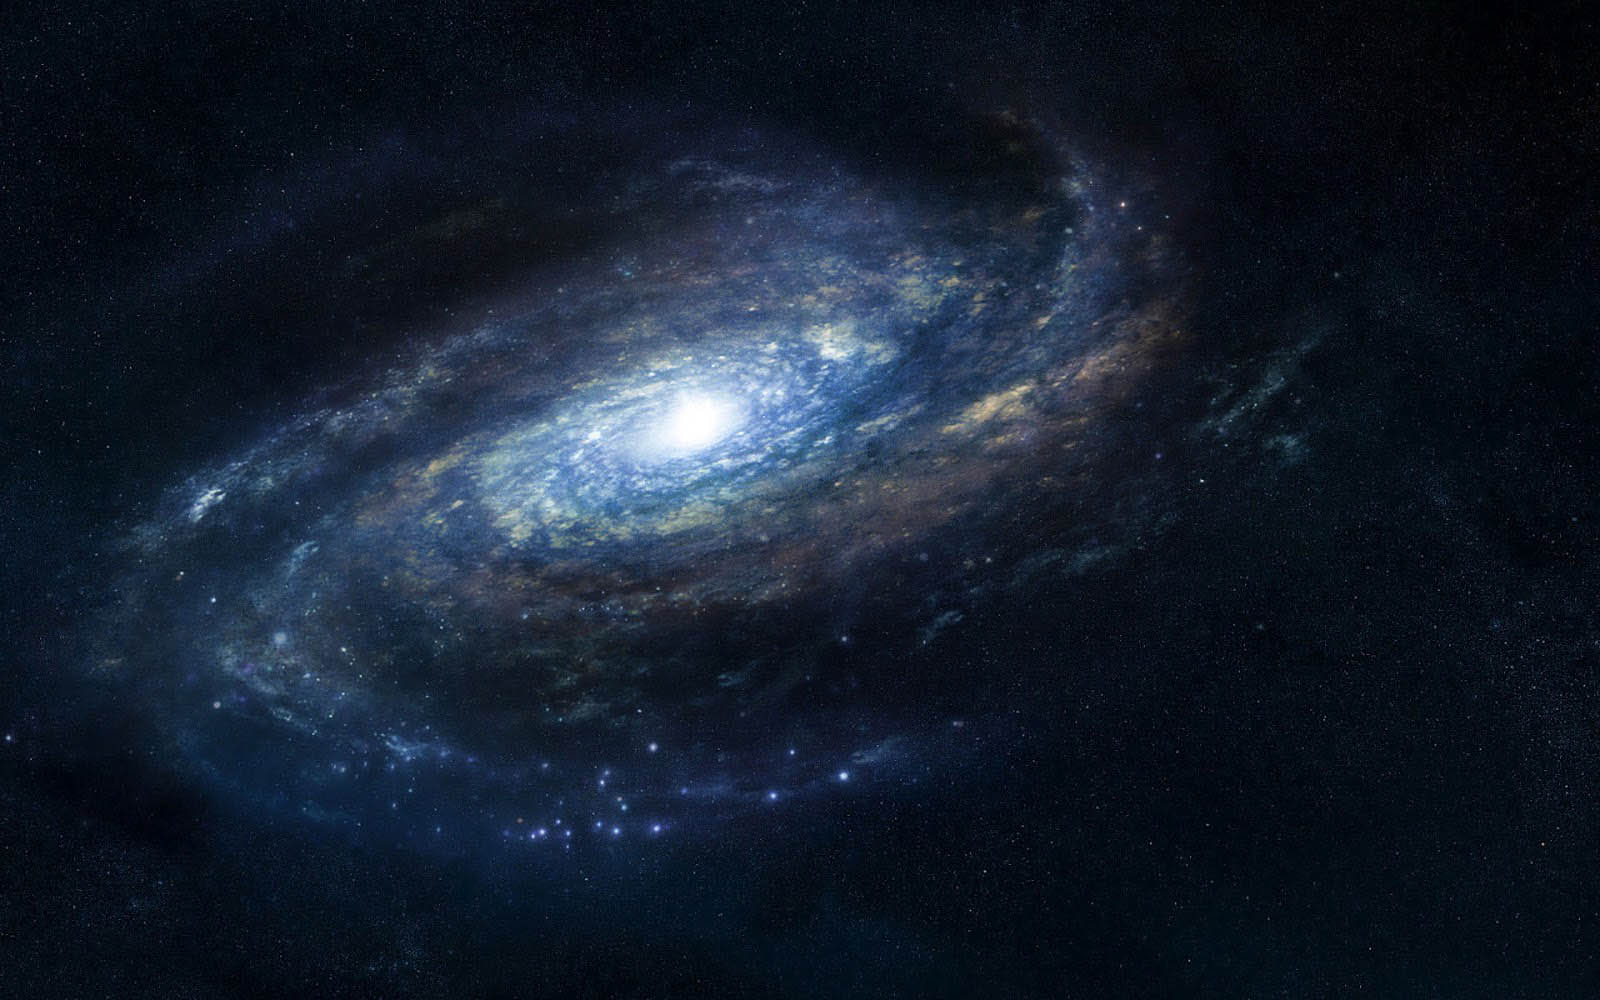 wallpaper Galaxy Desktop Wallpapers 1600x1000